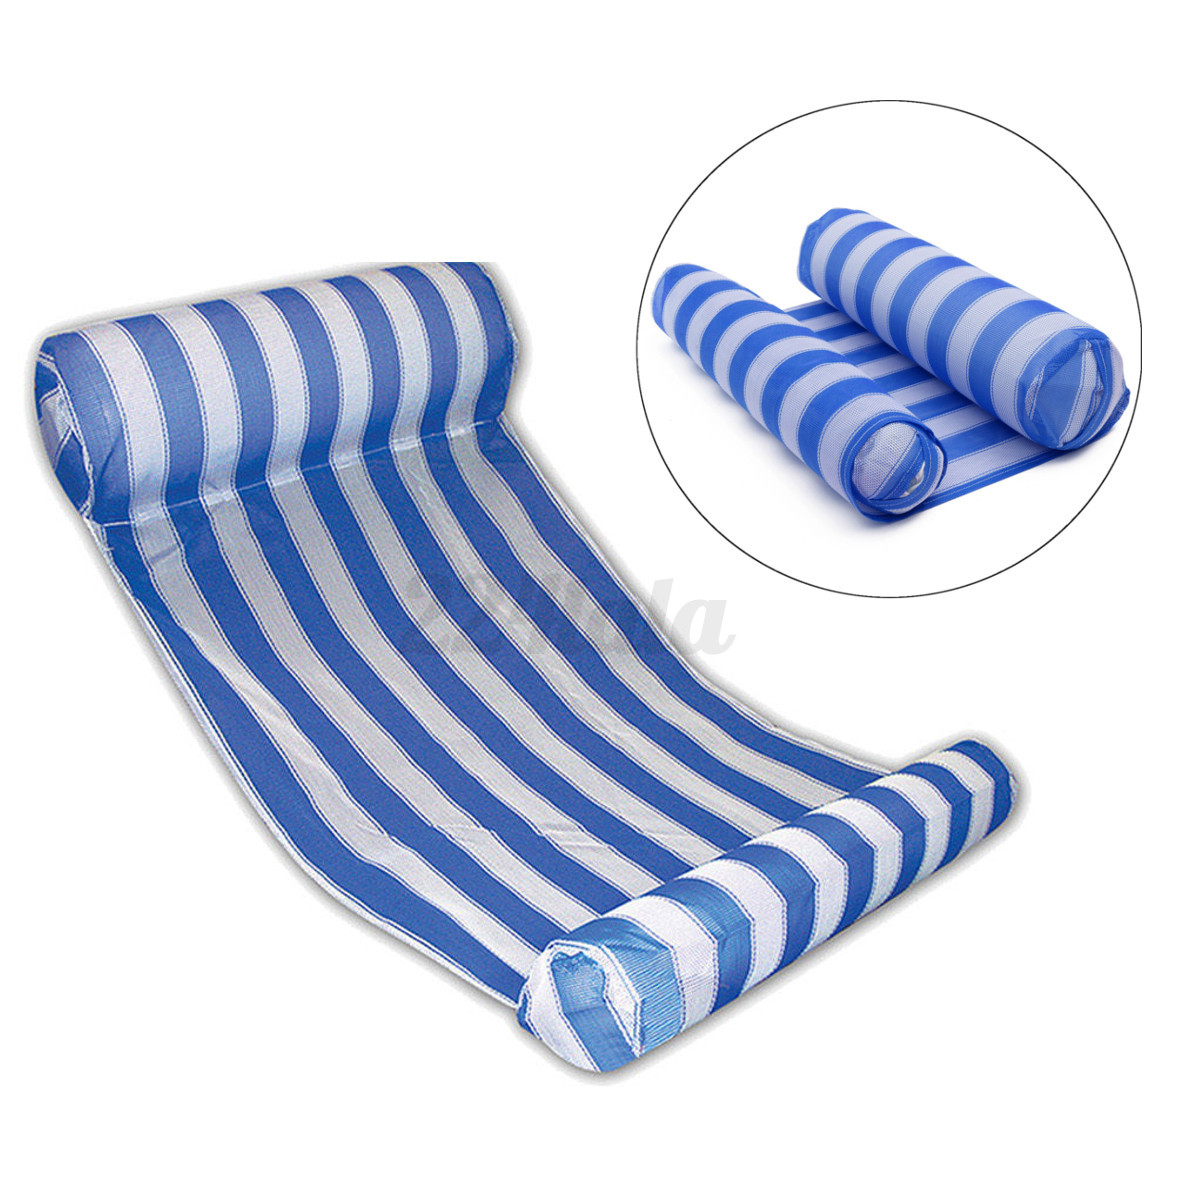 Swimming pool inflatable floating water hammock lounge - Swimming pool floating lounge chairs ...